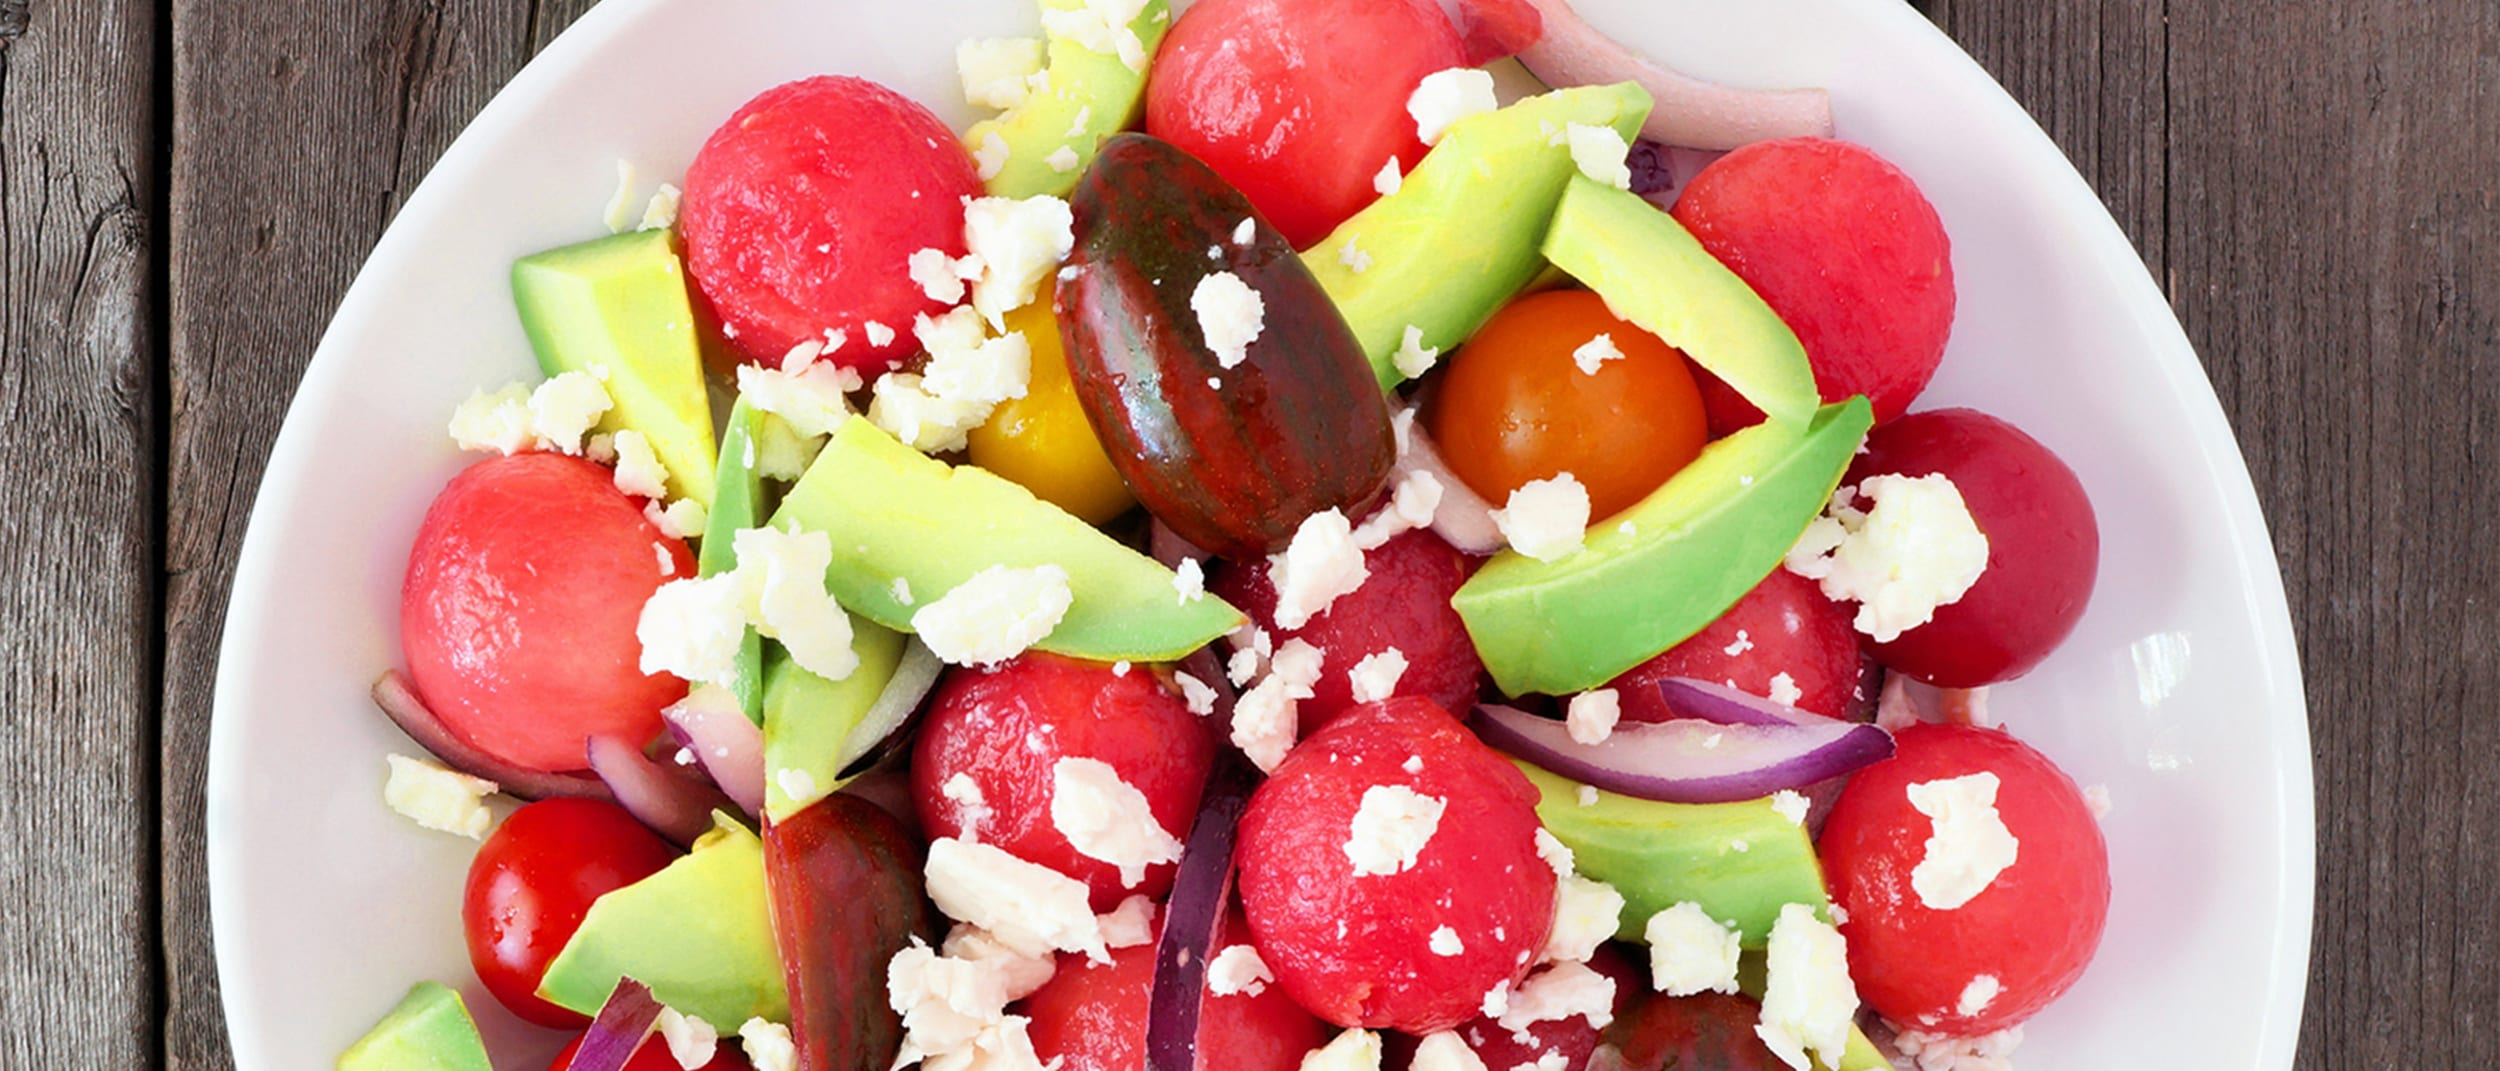 Refreshing avocado watermelon salad